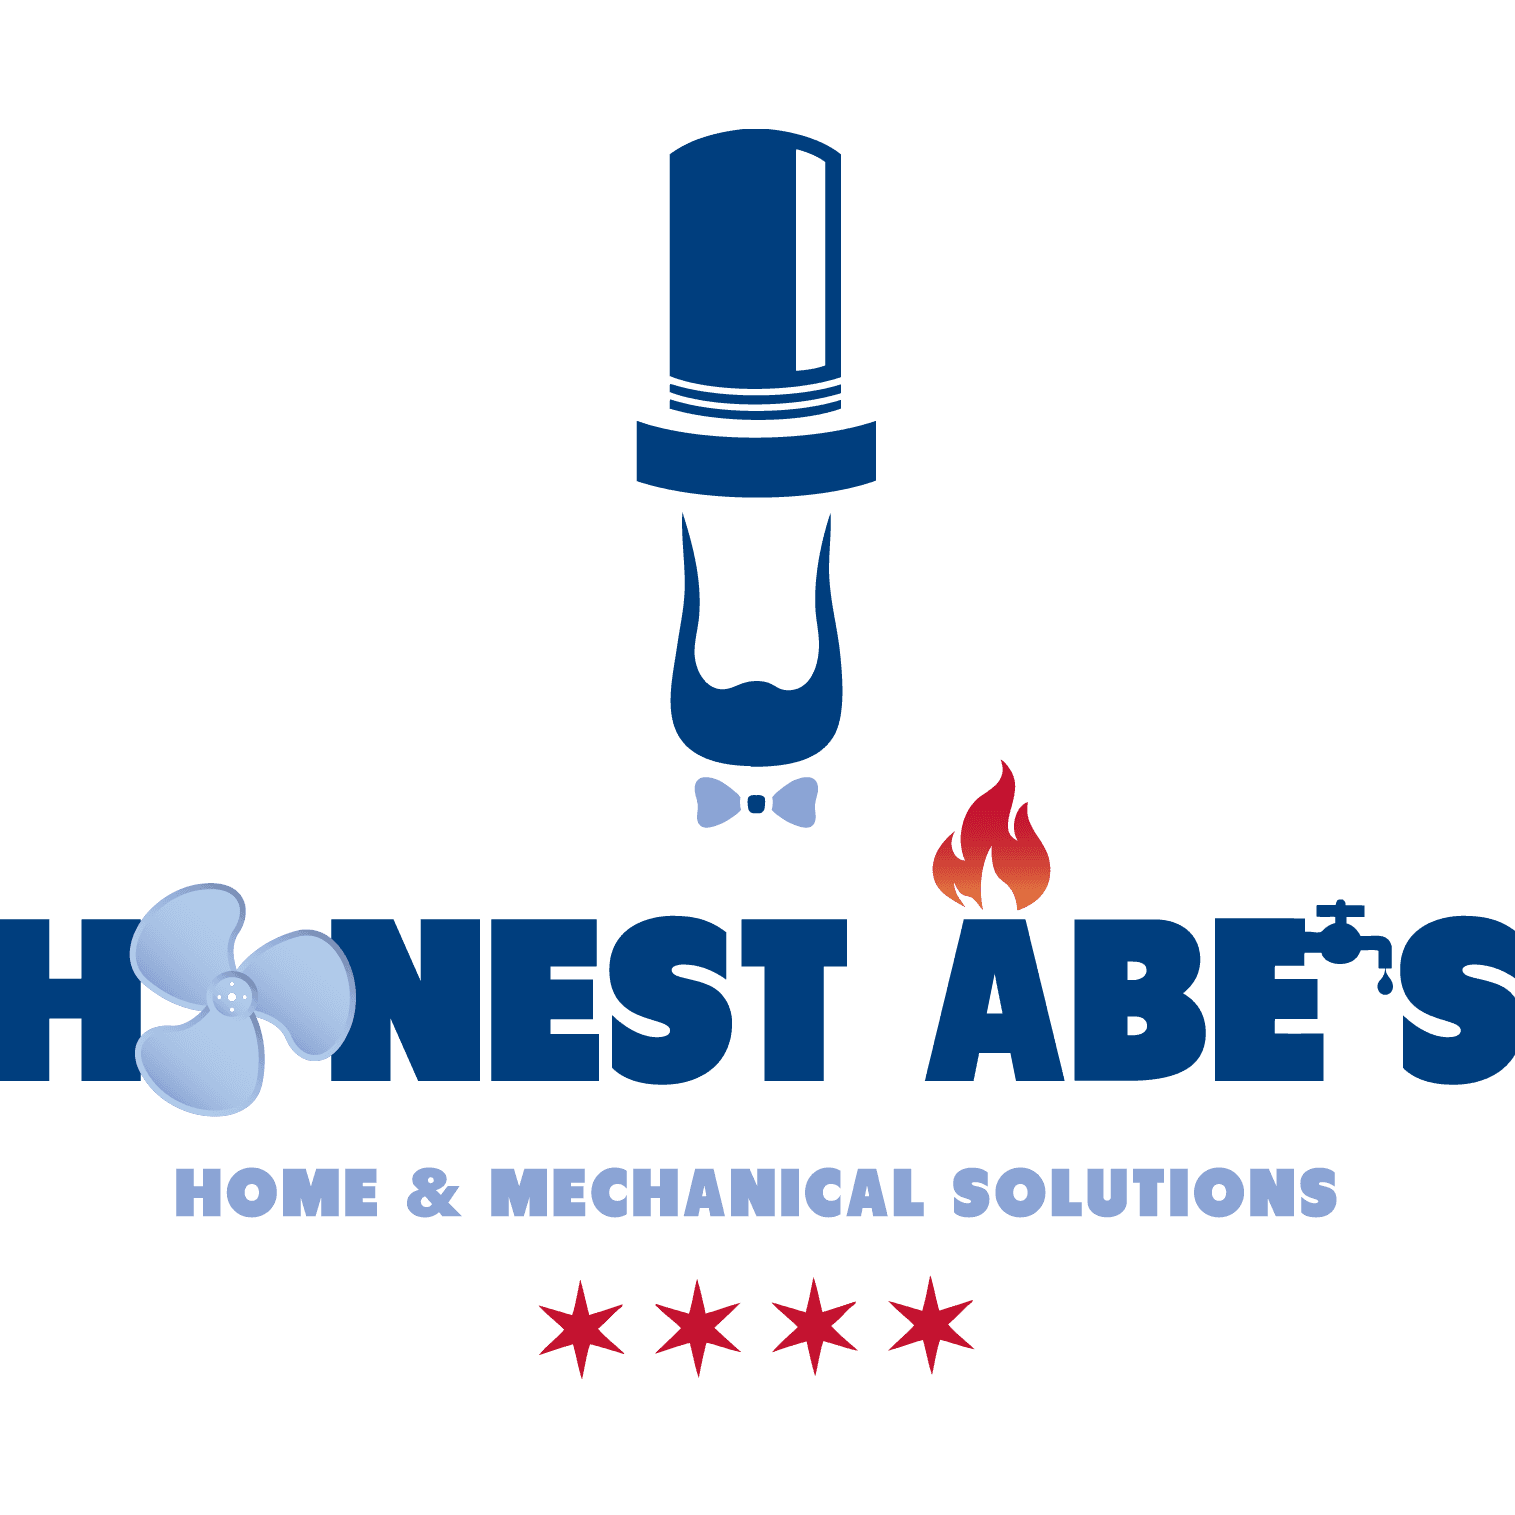 Honest Abe's Home & Mechanical Solutions